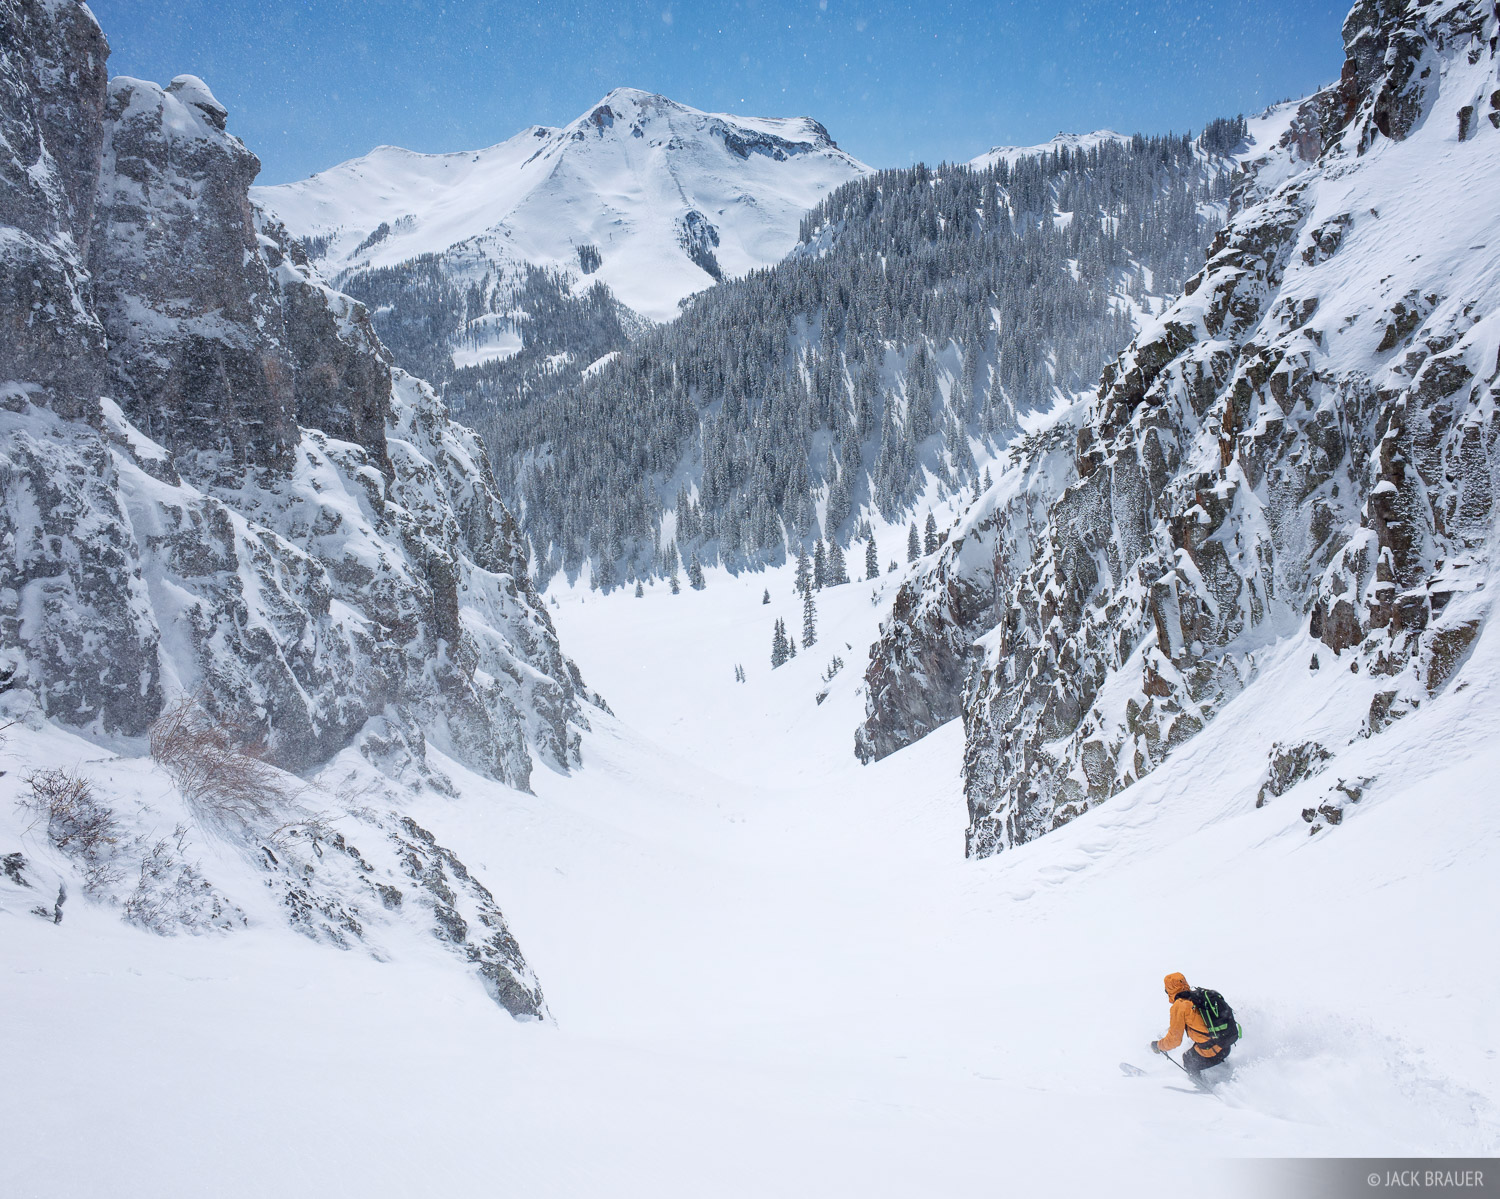 Colorado,Red Mountain Pass,San Juan Mountains, Dan Chehayl, skiing, photo